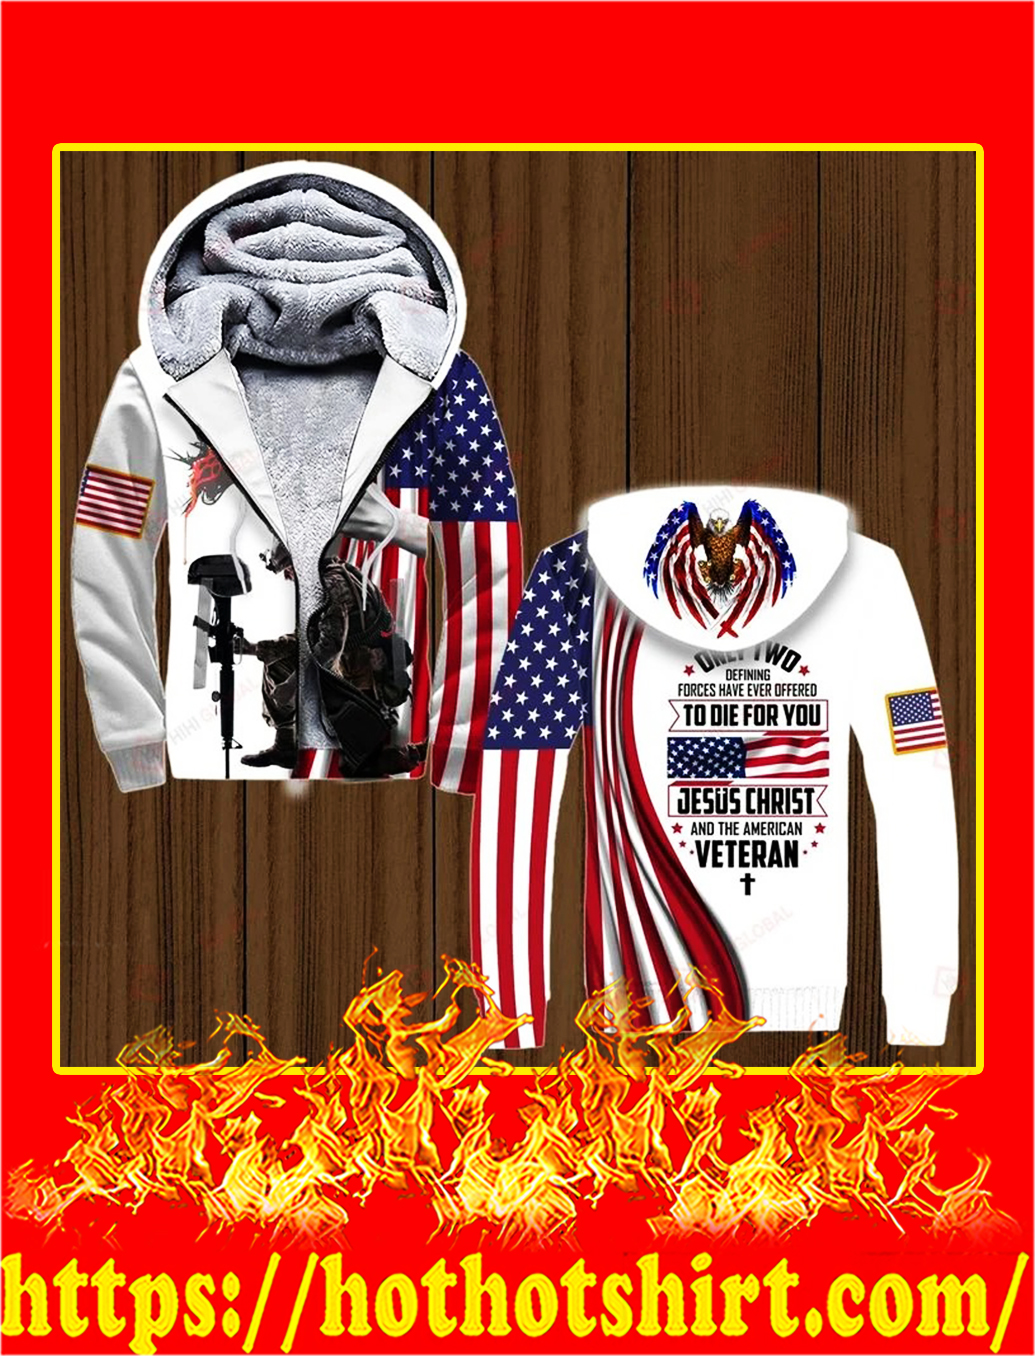 Only two defining forces have ever offered to die for you jesus christ and the american veteran all over printed zip hoodieOnly two defining forces have ever offered to die for you jesus christ and the american veteran all over printed zip hoodie